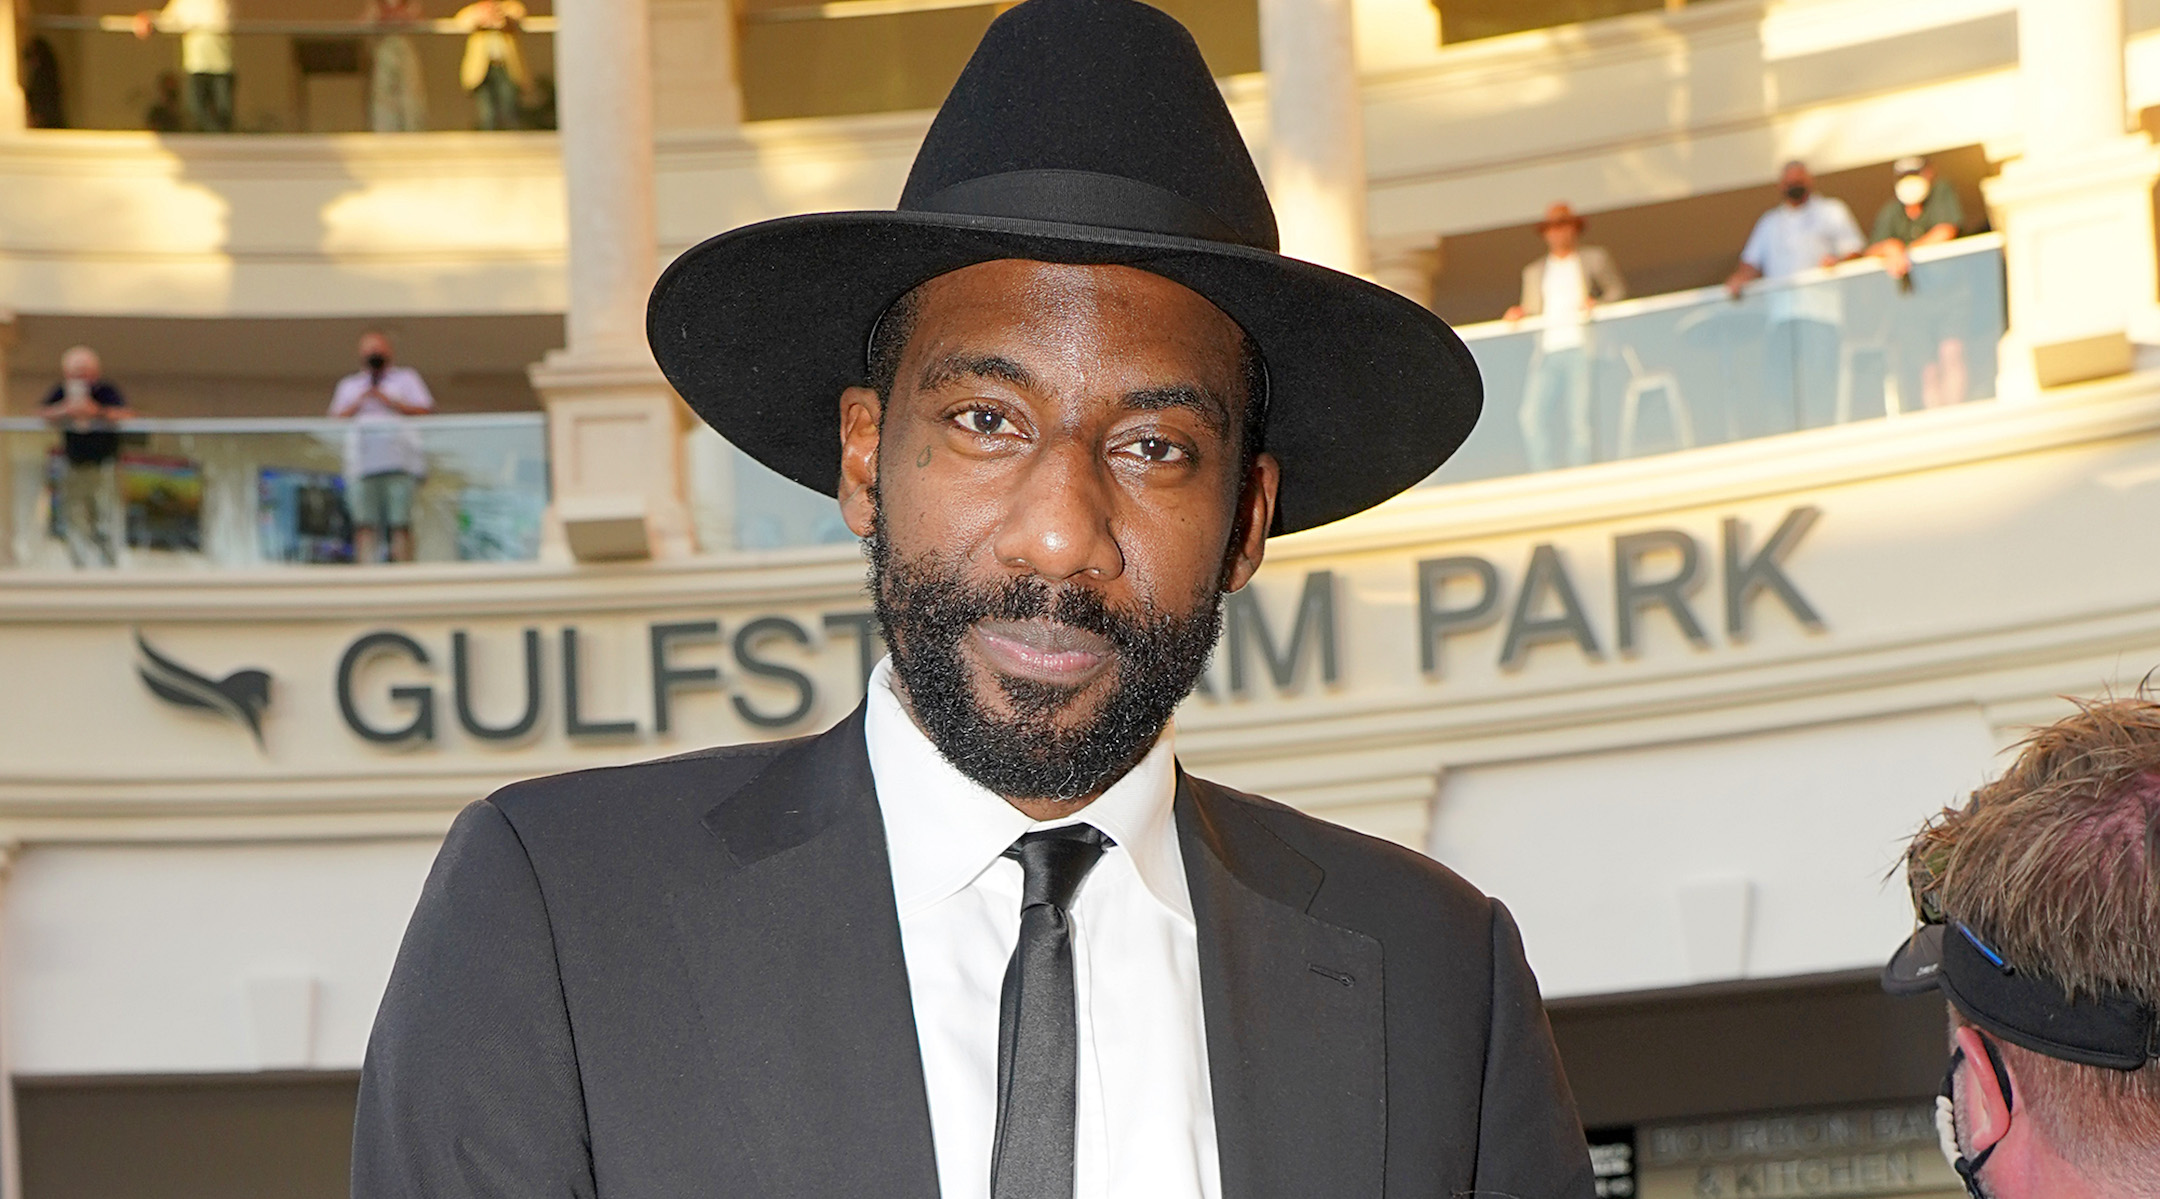 Amar'e Stoudemire, now a Brooklyn Nets coach, doesn't work on Shabbat